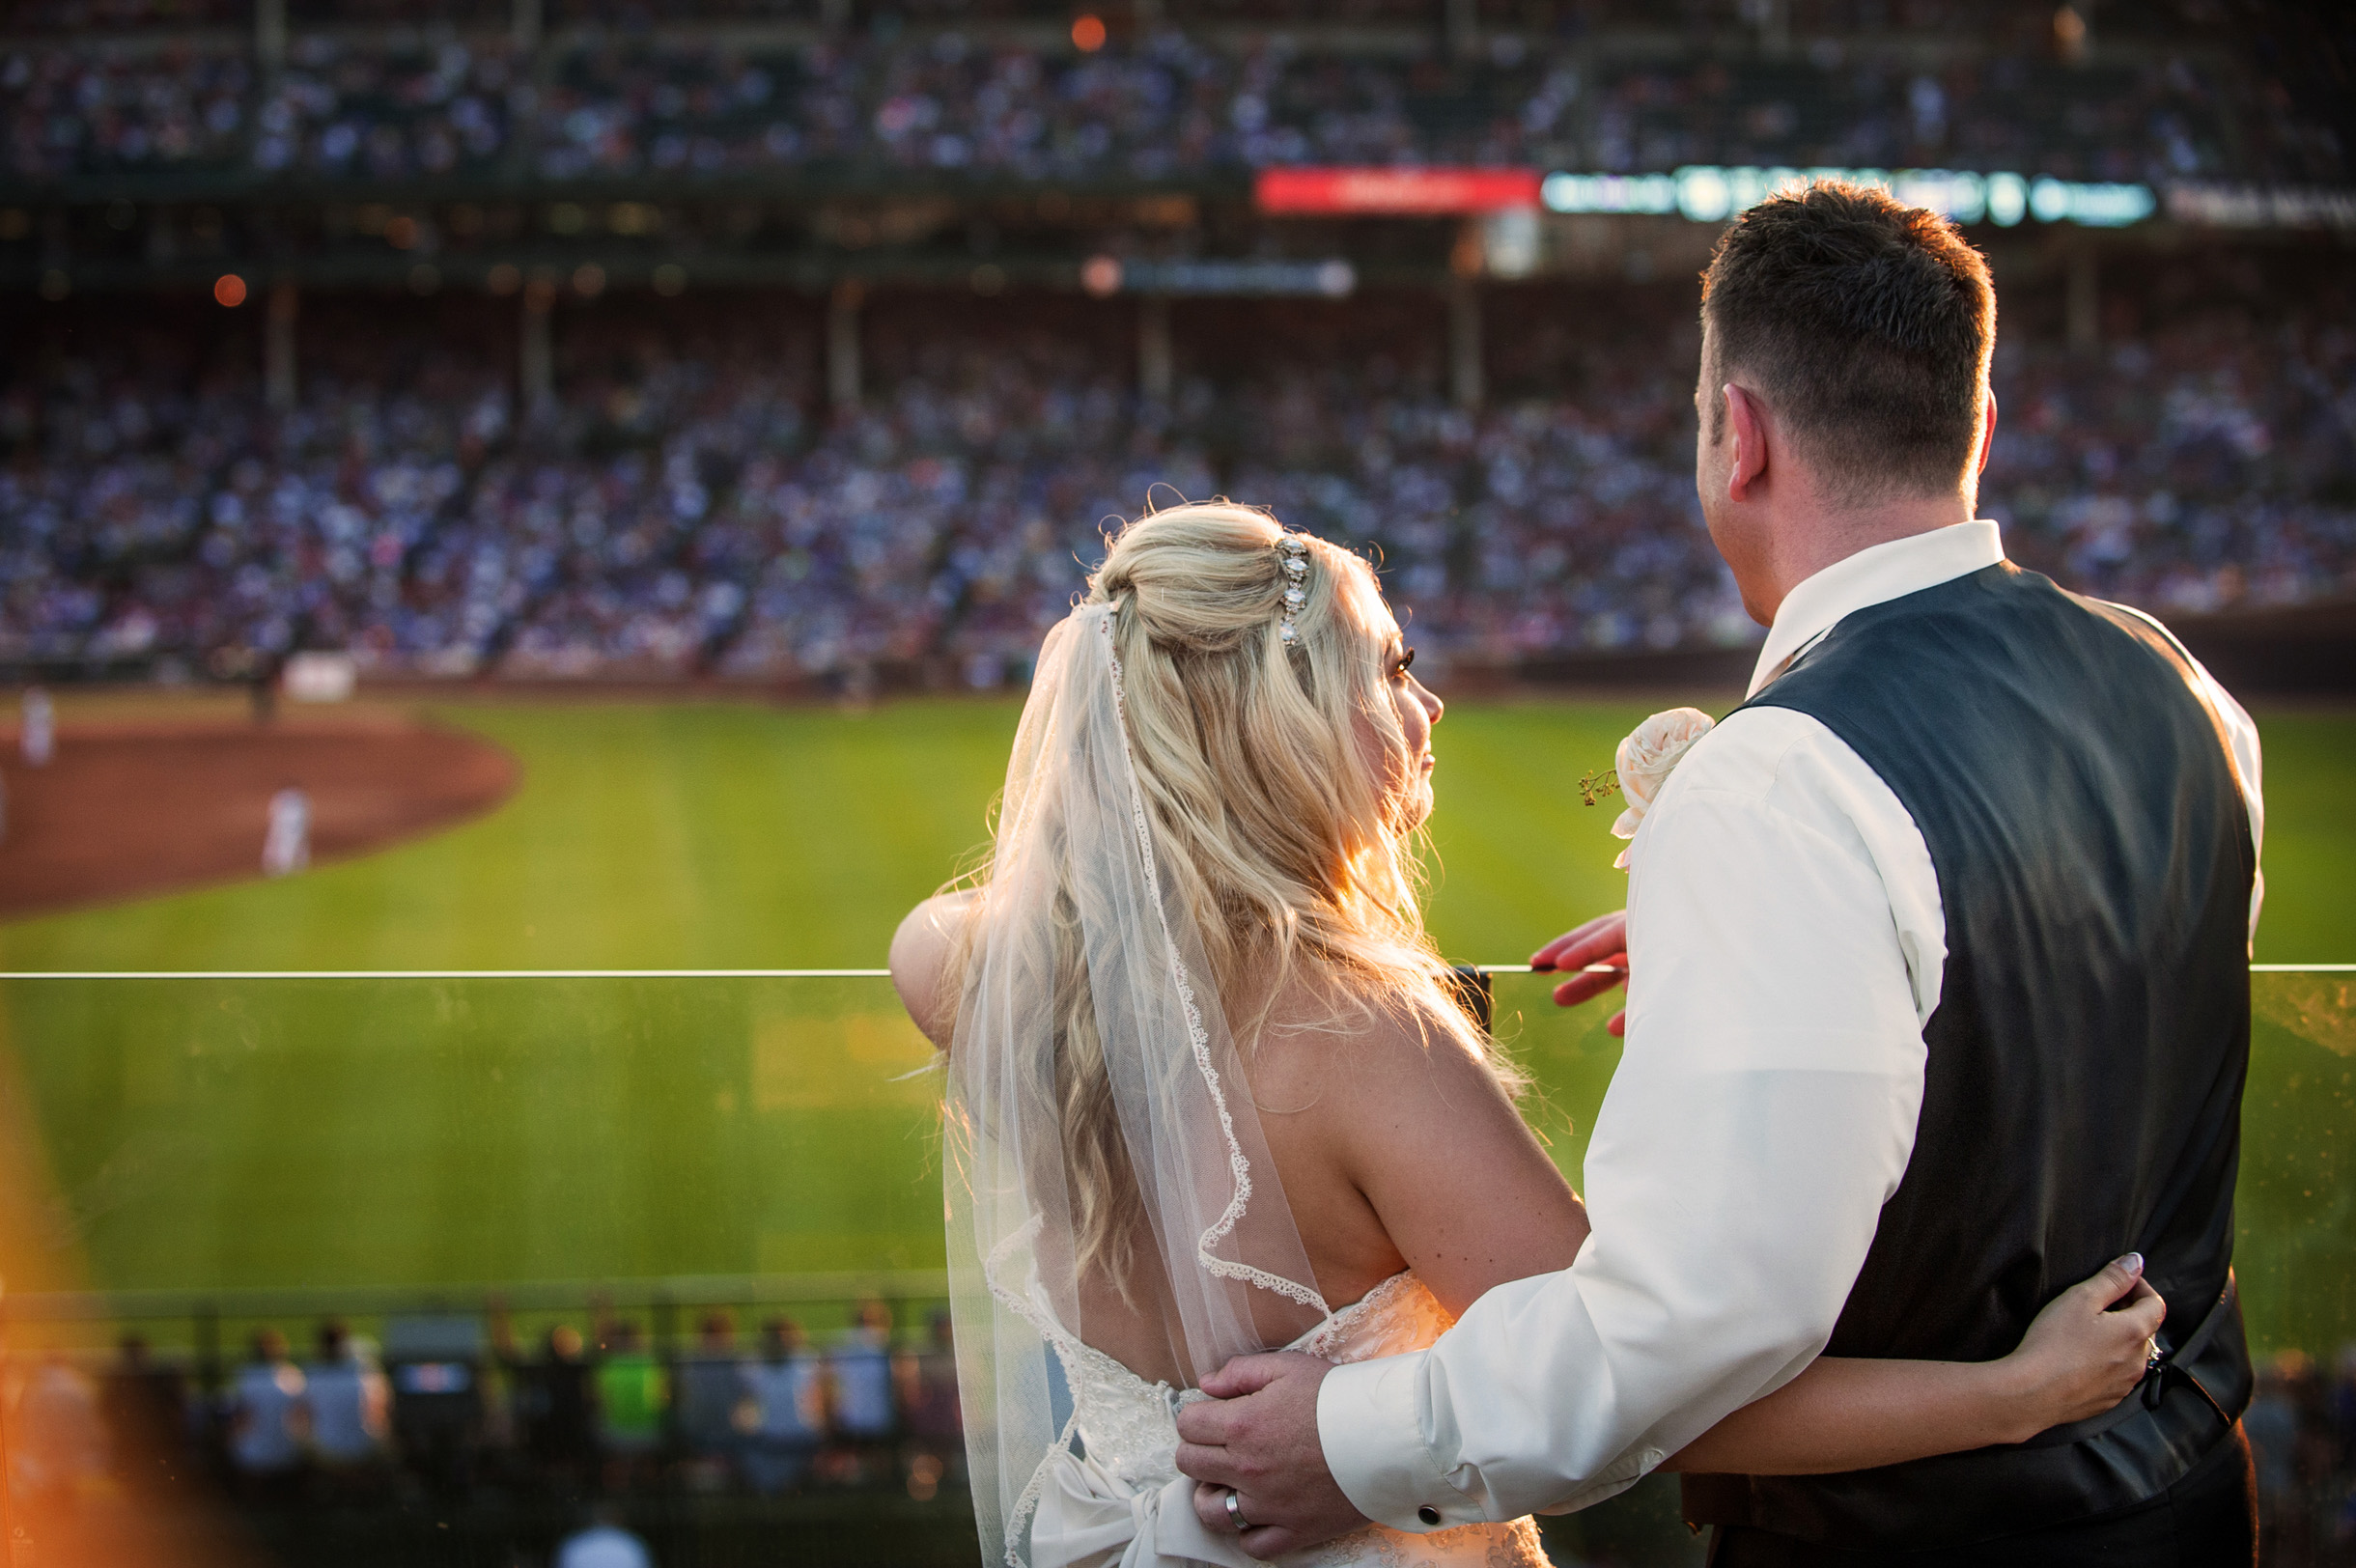 Bride and groom celebrating their wedding day looking into Wrigley Field where the Chicago Cubs play baseball-294